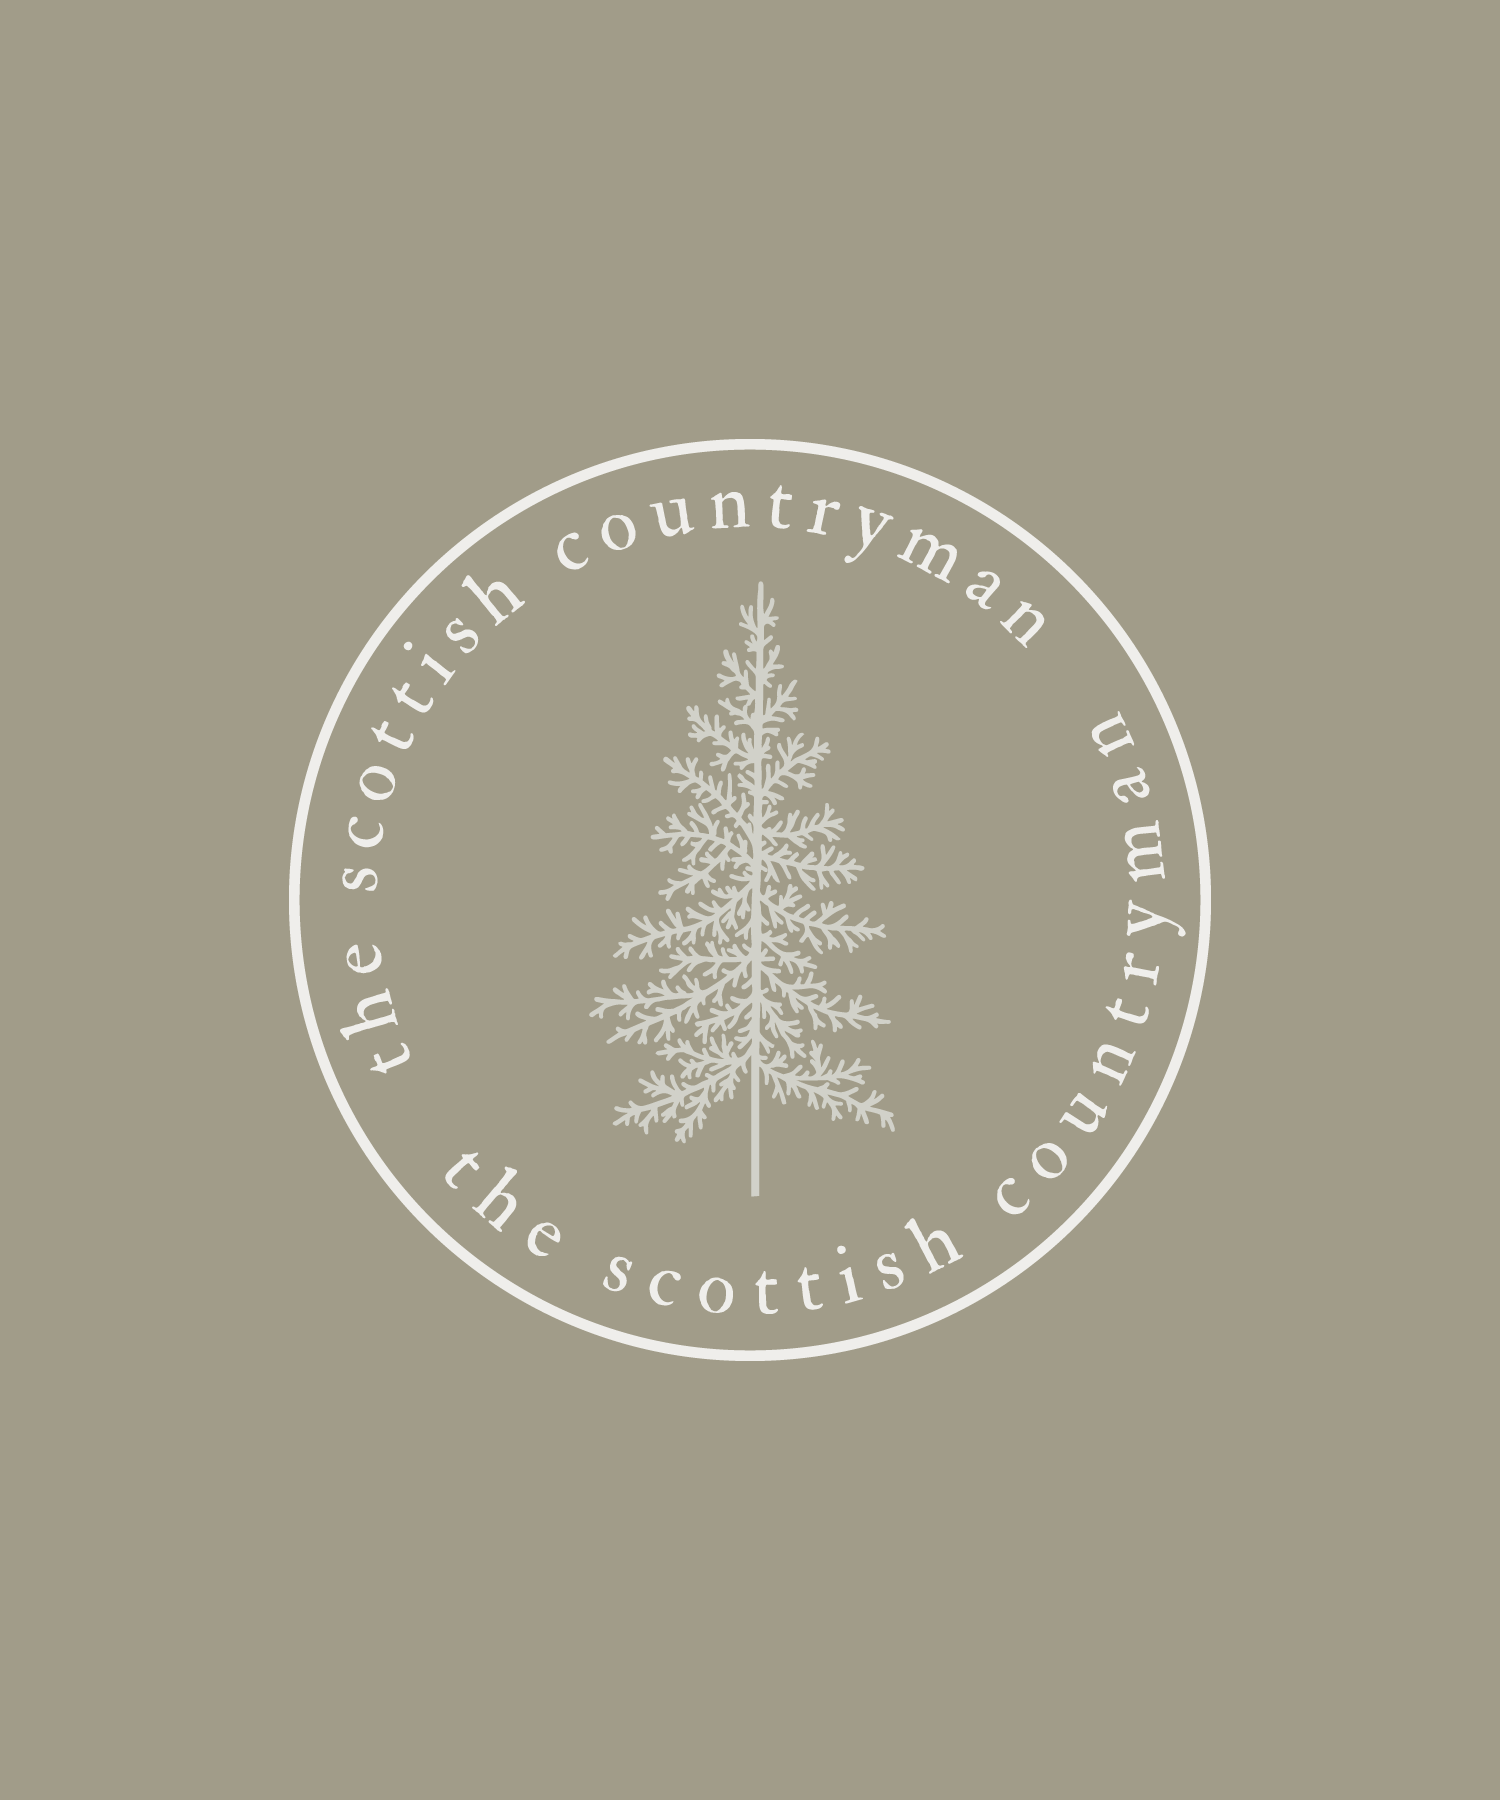 The Scottish Countryman - Logo and Branding design for small businesses by Bea & Bloom Creative Design Studio